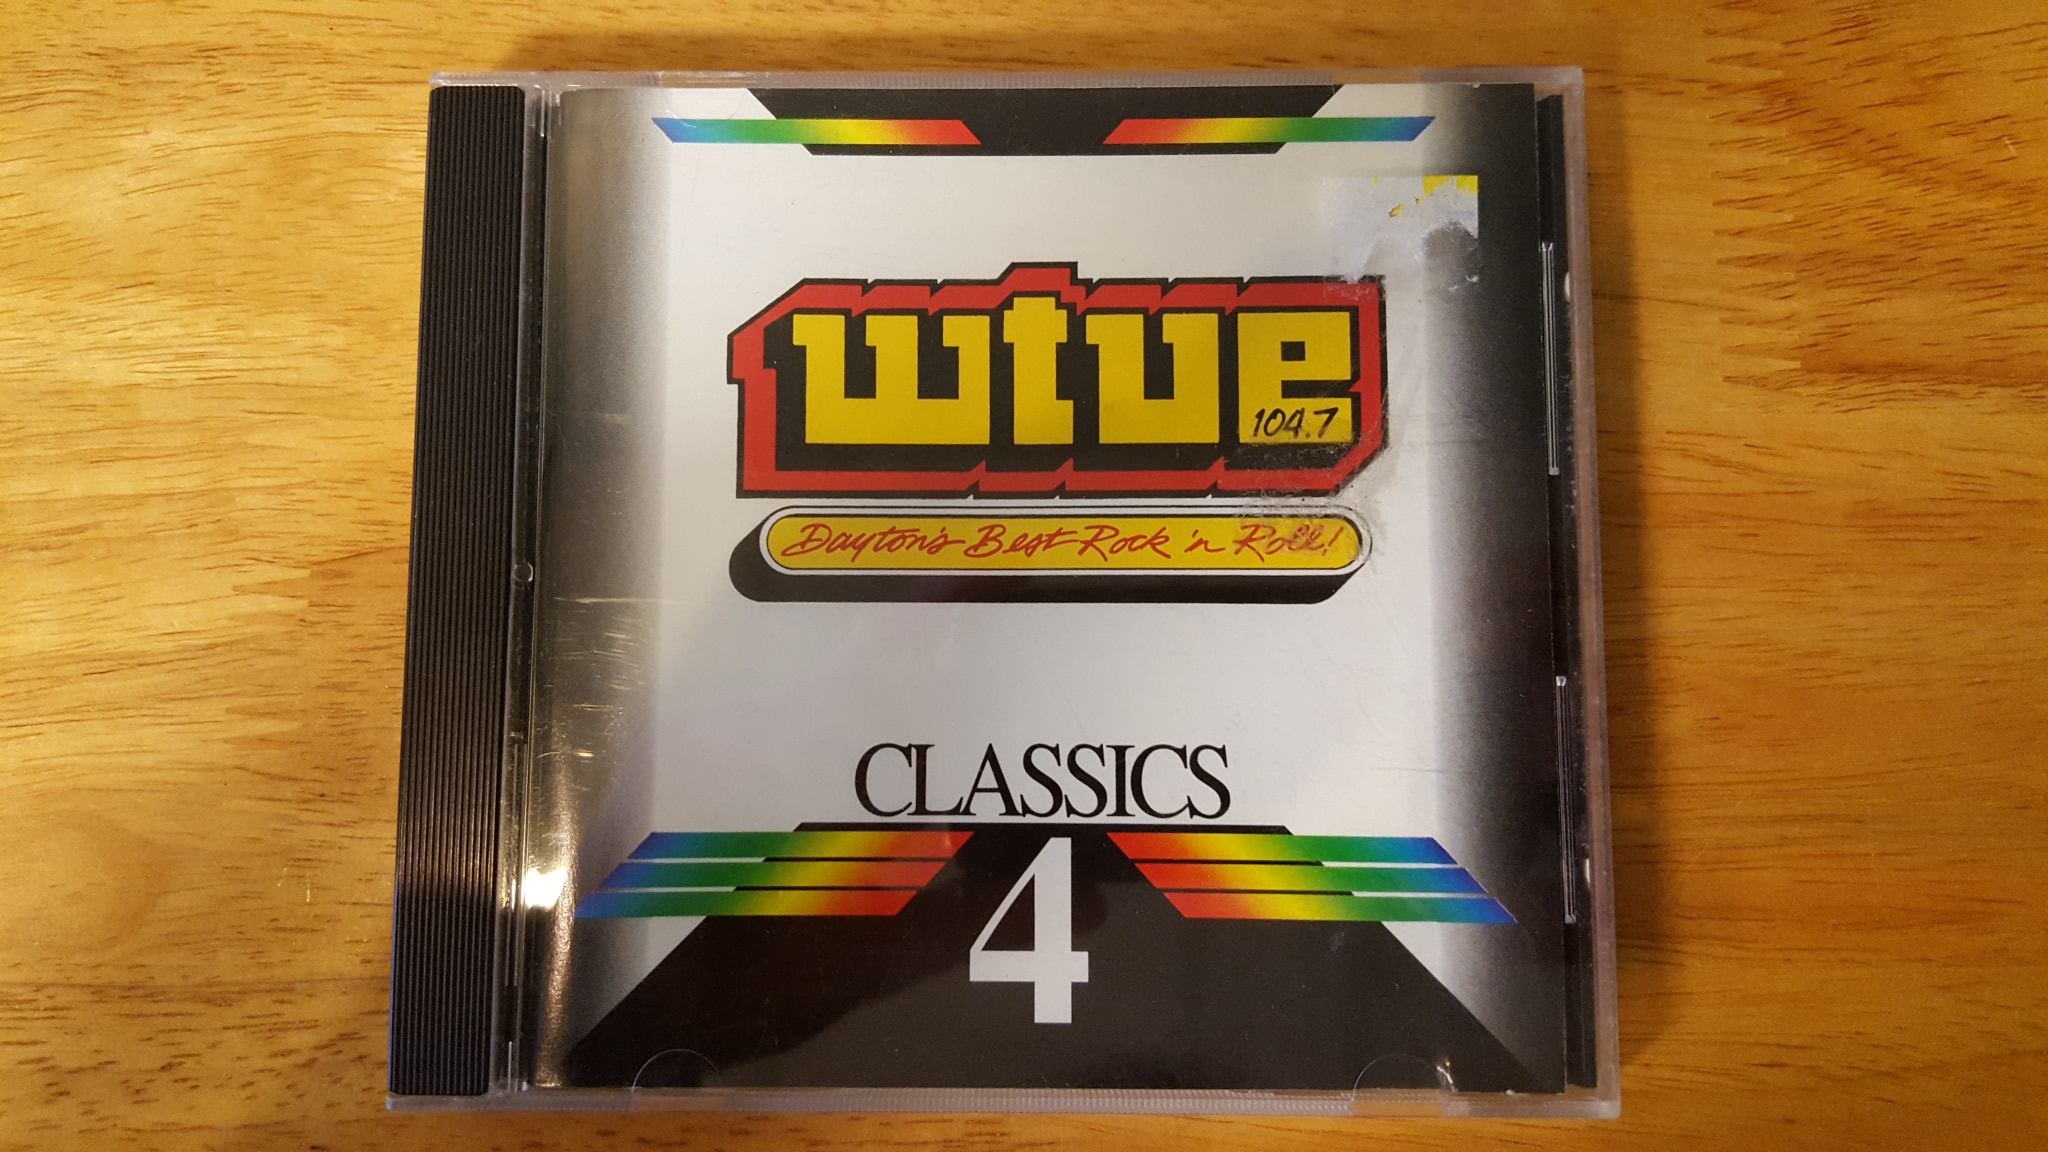 105.9 FM Wckg Classics Vol 4 On Audio CD Album